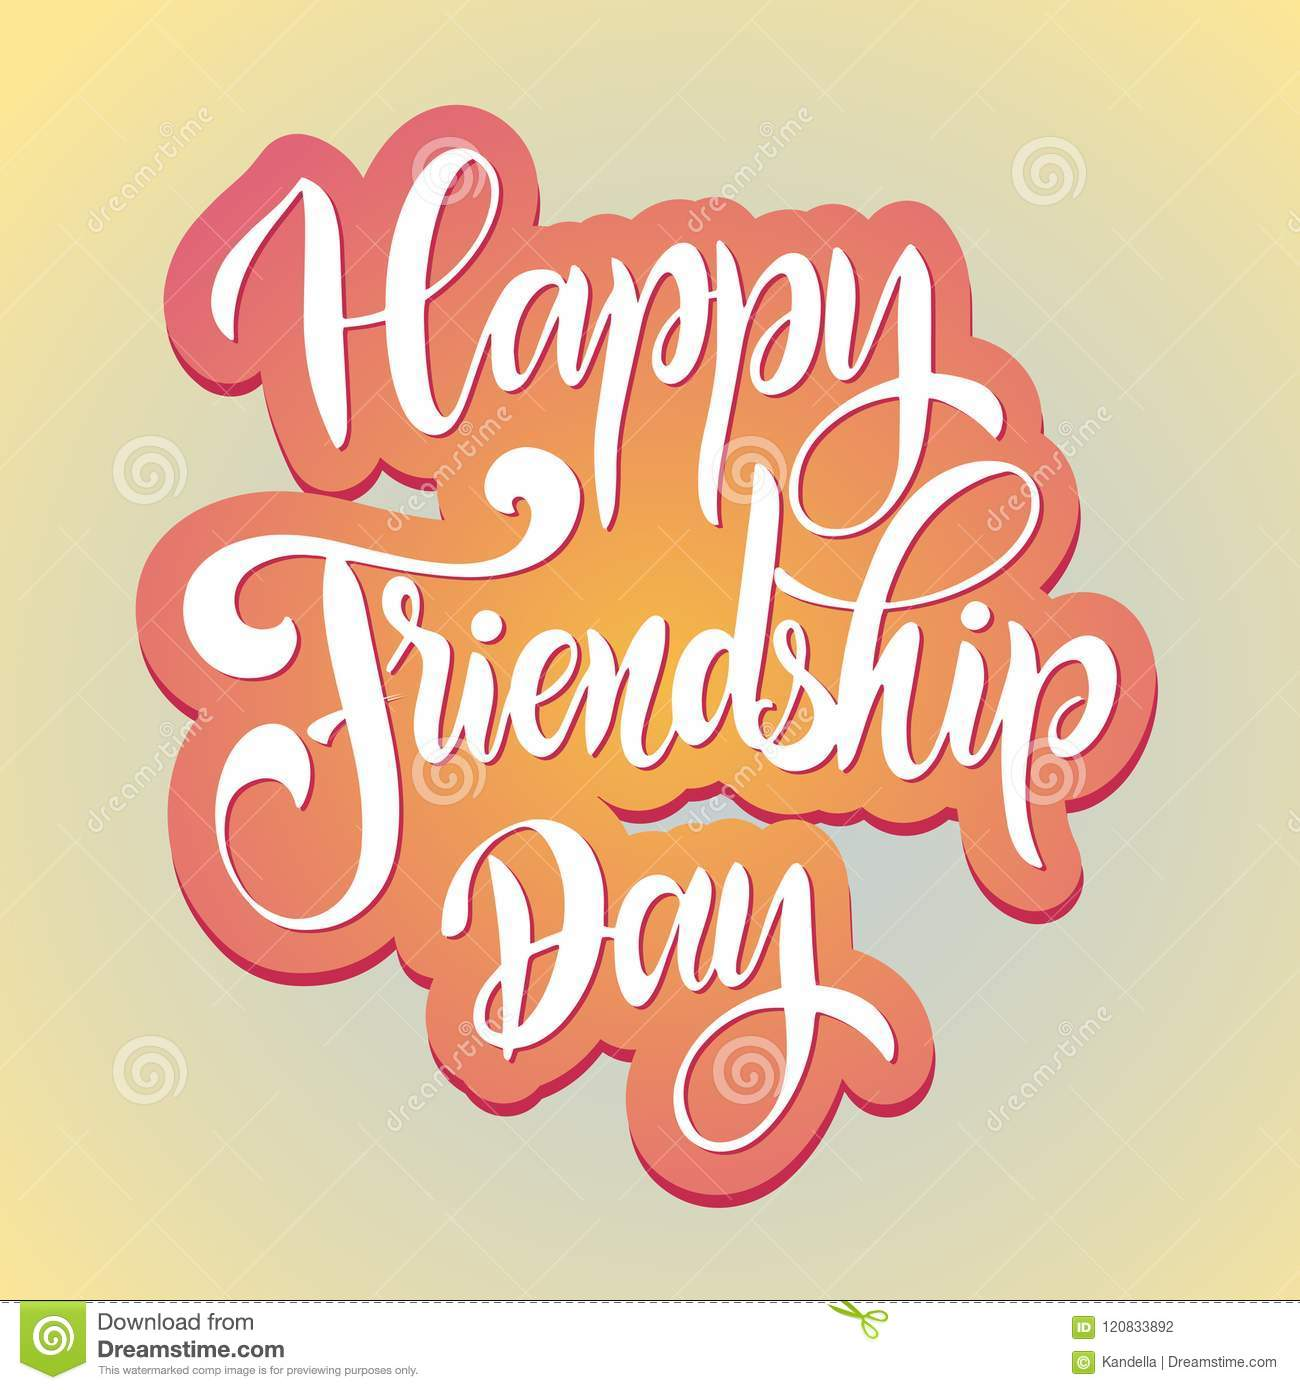 Friendship day hand drawn lettering stock vector illustration of friendship day hand drawn lettering vector elements for invitations posters greeting cards t shirt design friendship quotes m4hsunfo